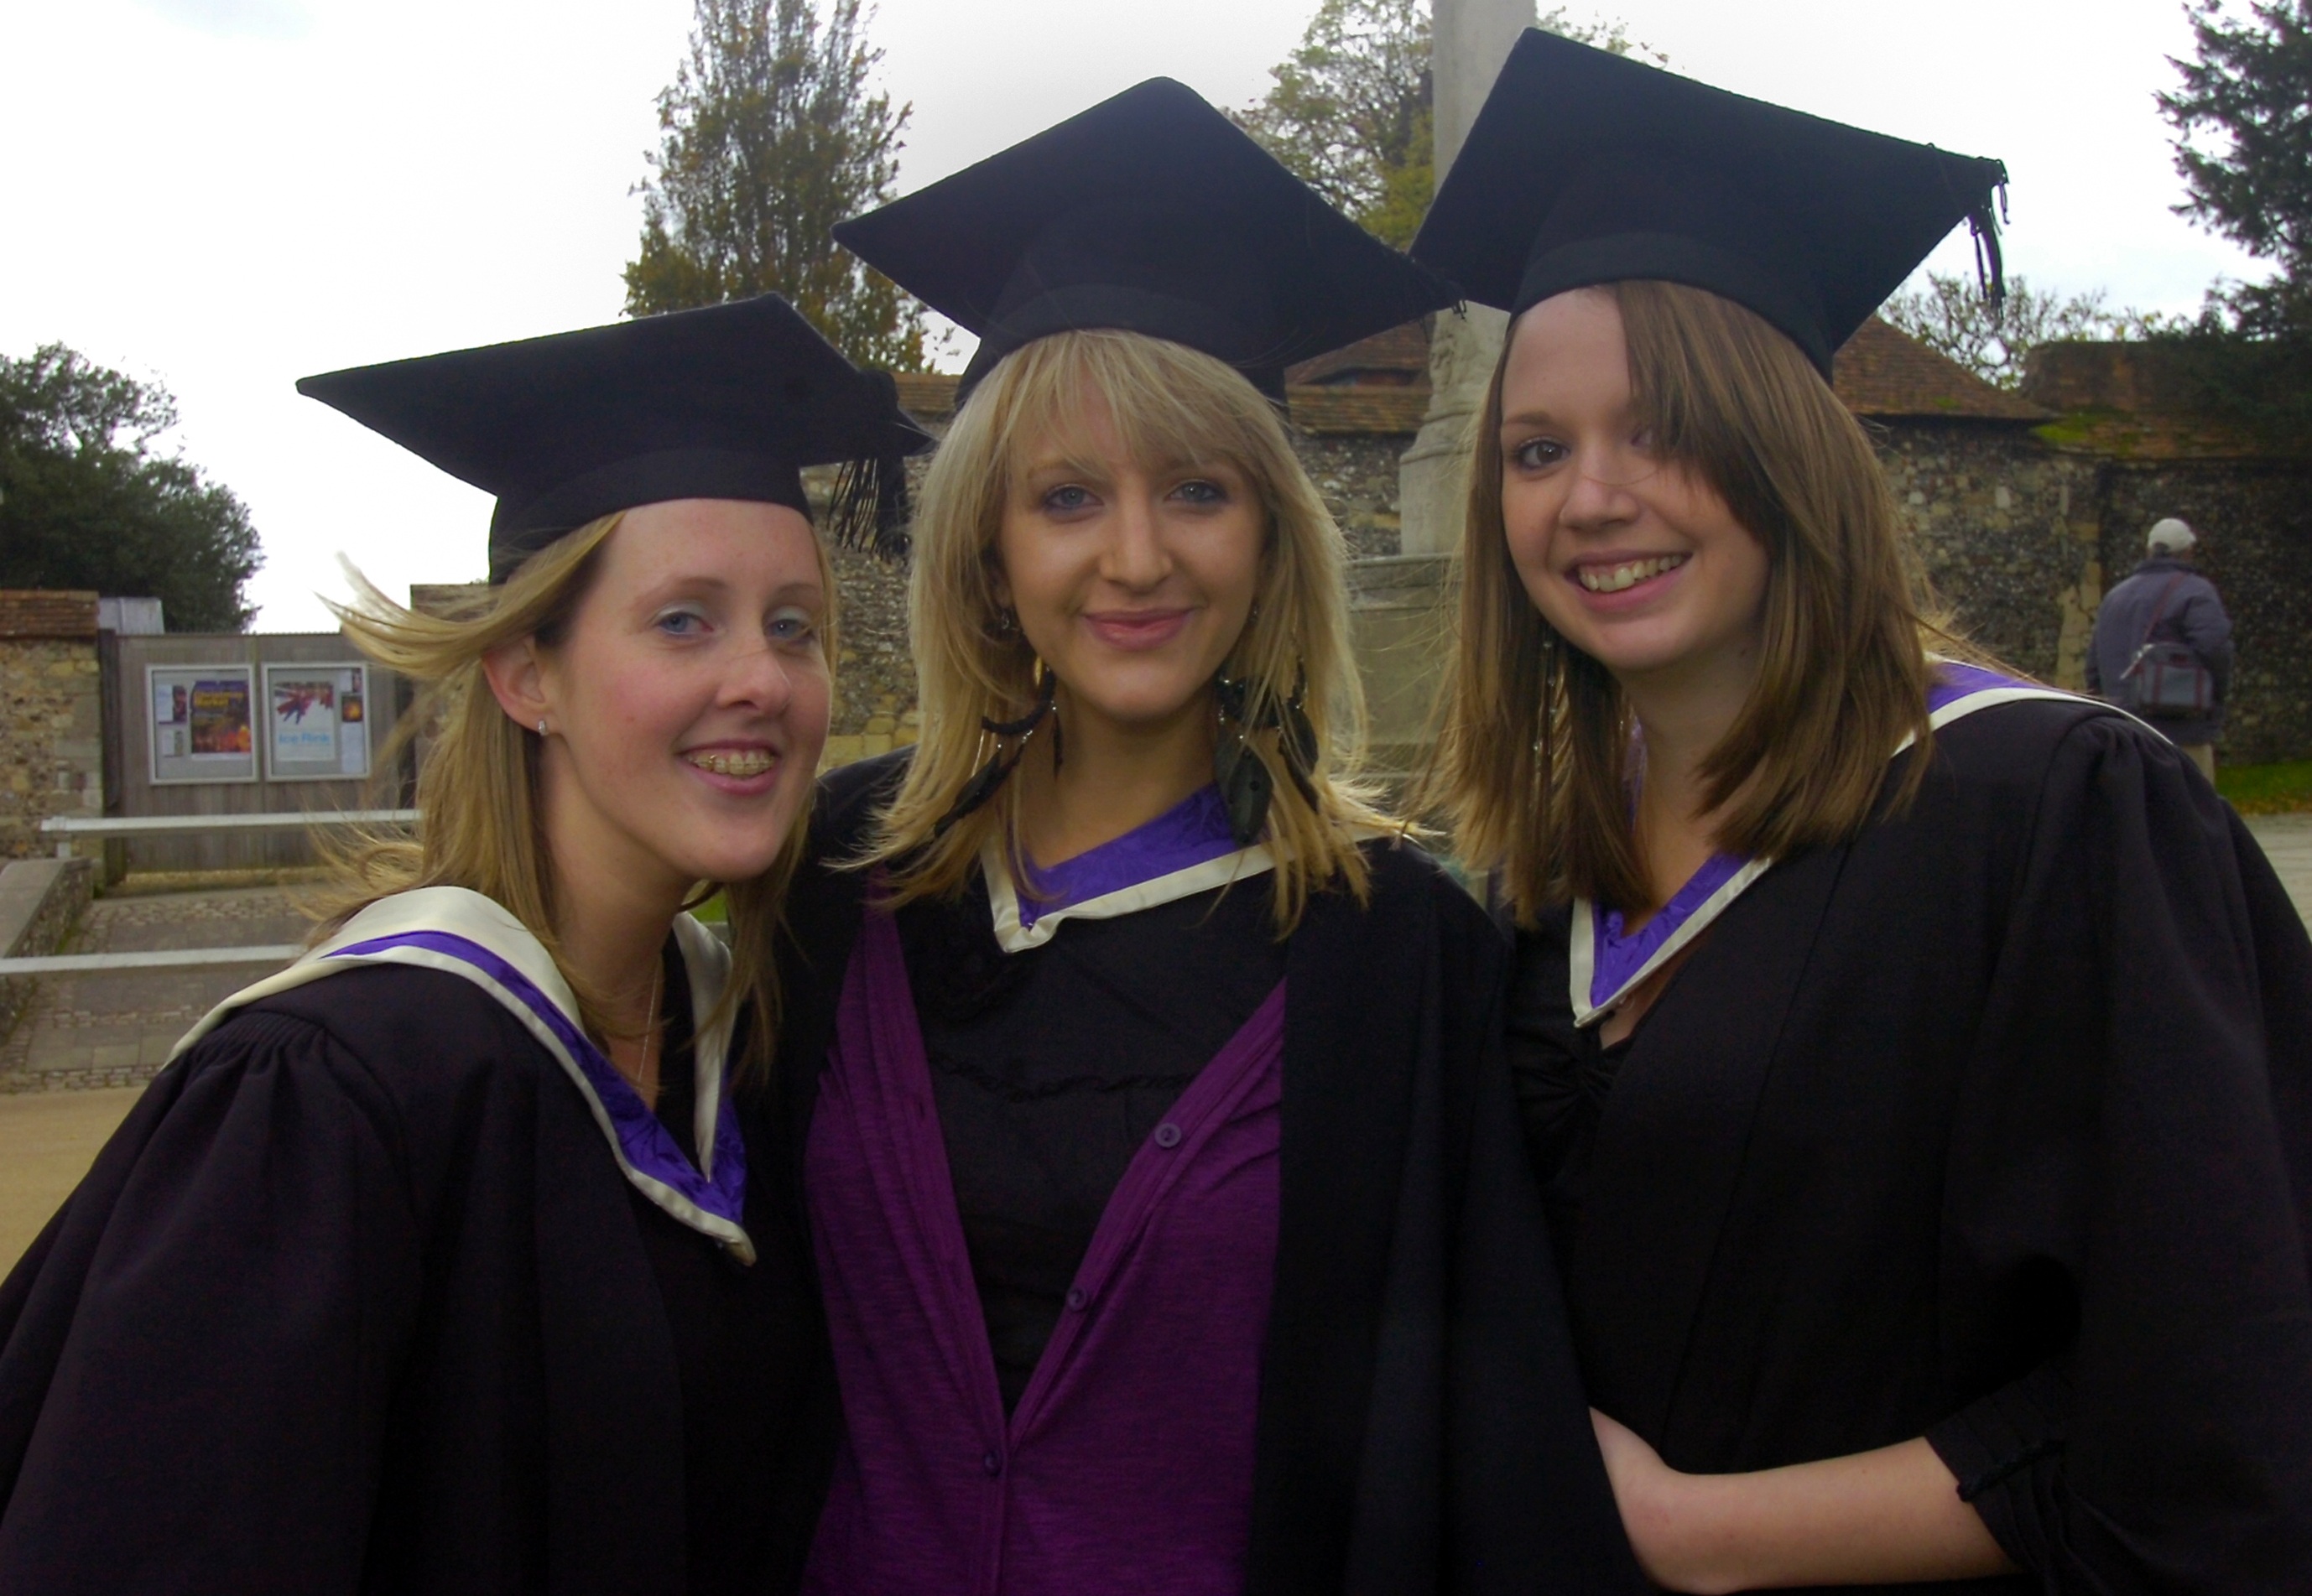 Previous graduates from the University of Winchester